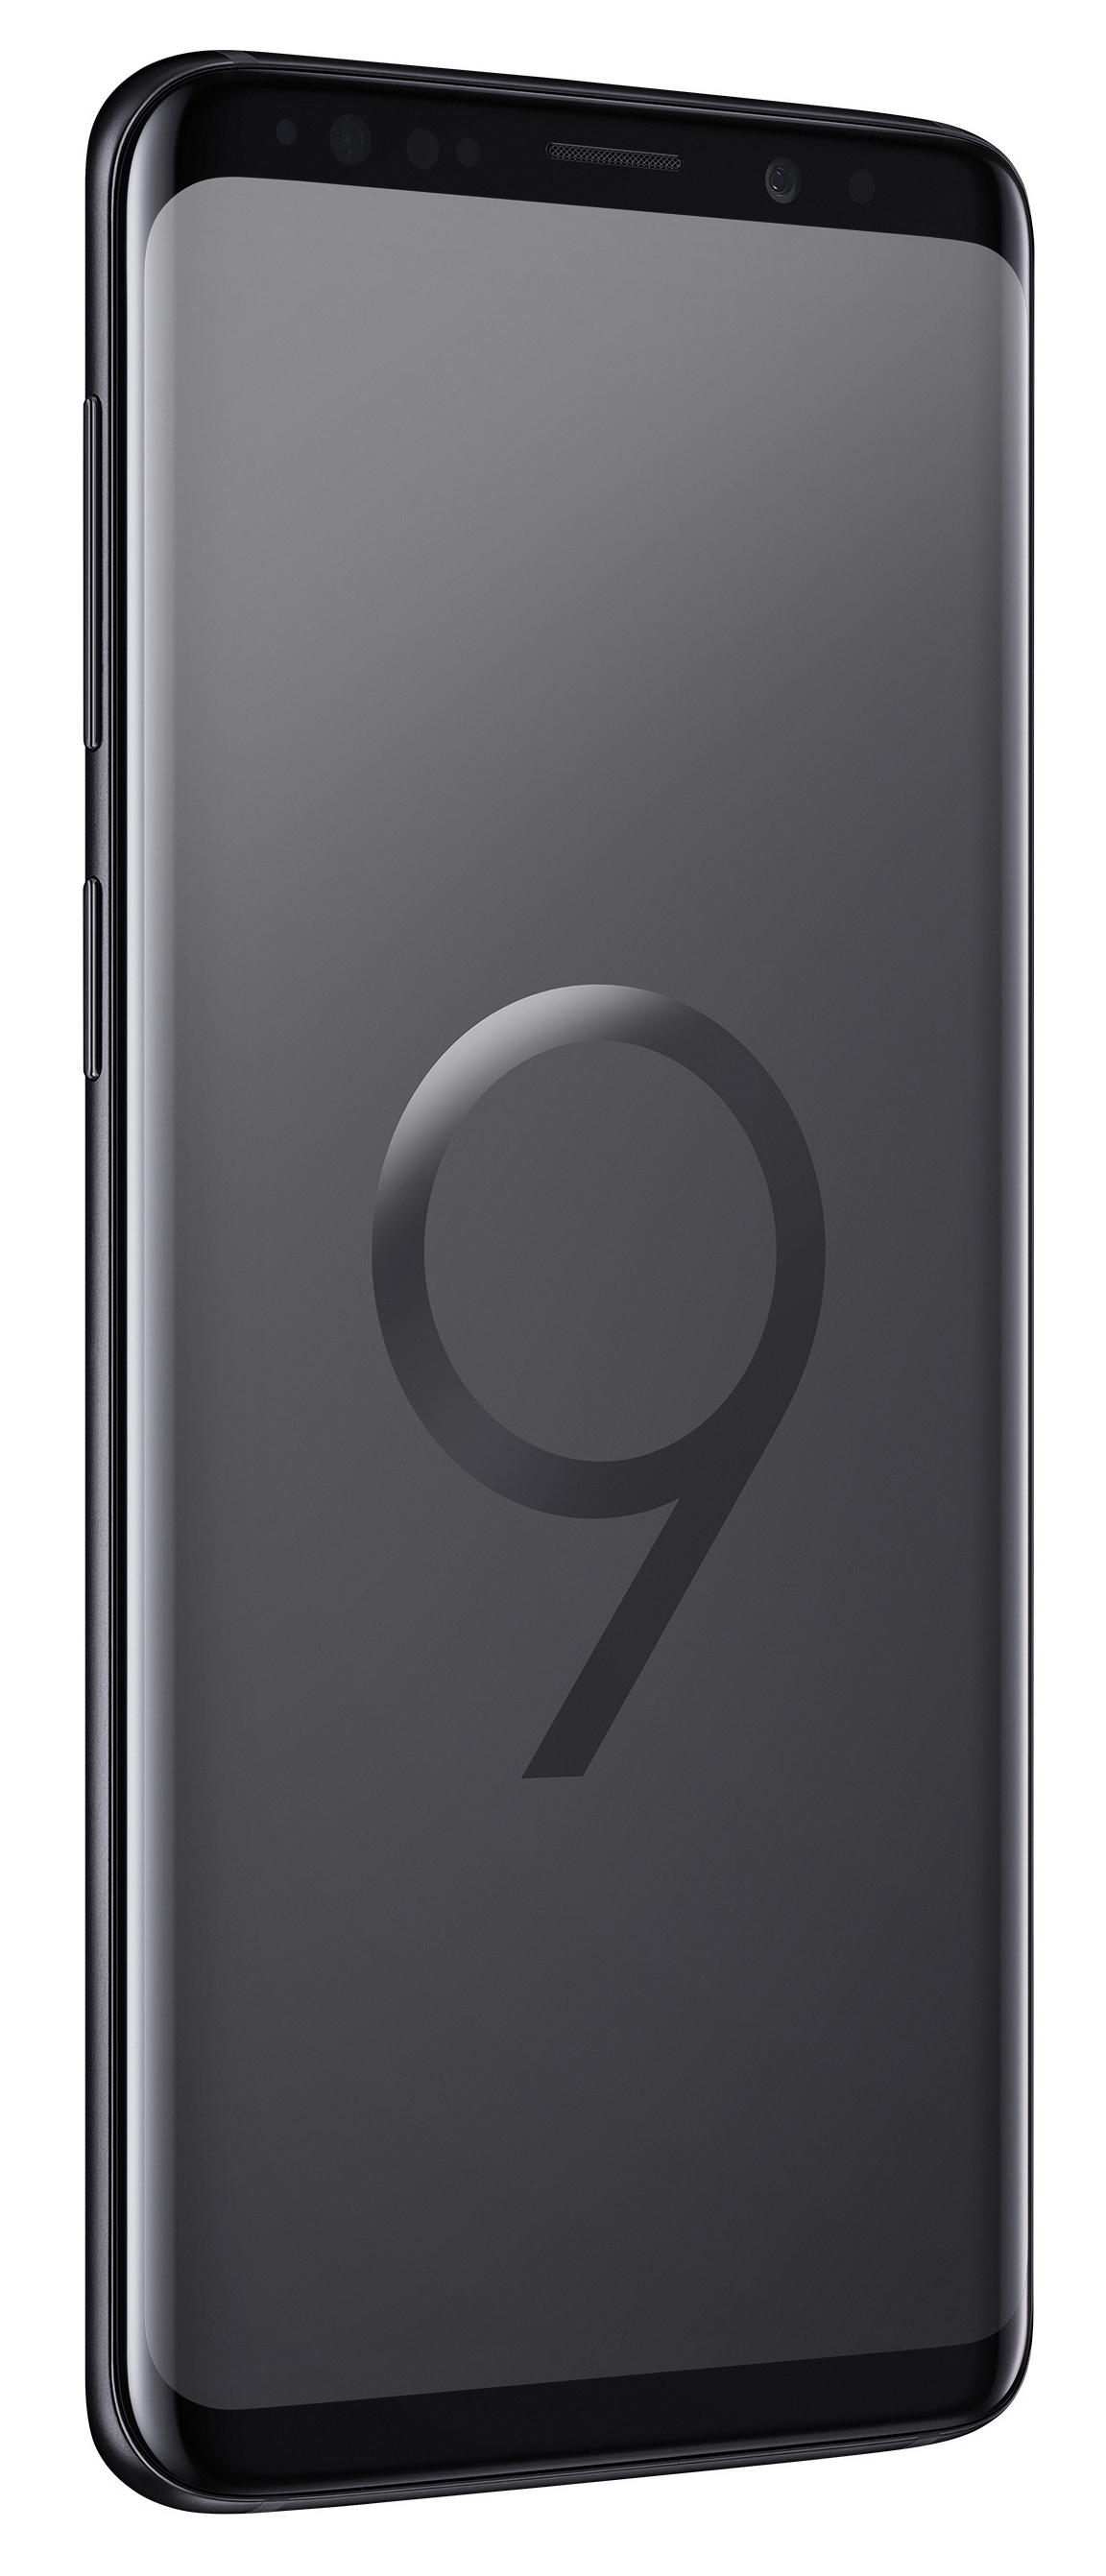 Samsung Galaxy S9 - Smartphone - 12 MP 64 GB - Schwarz